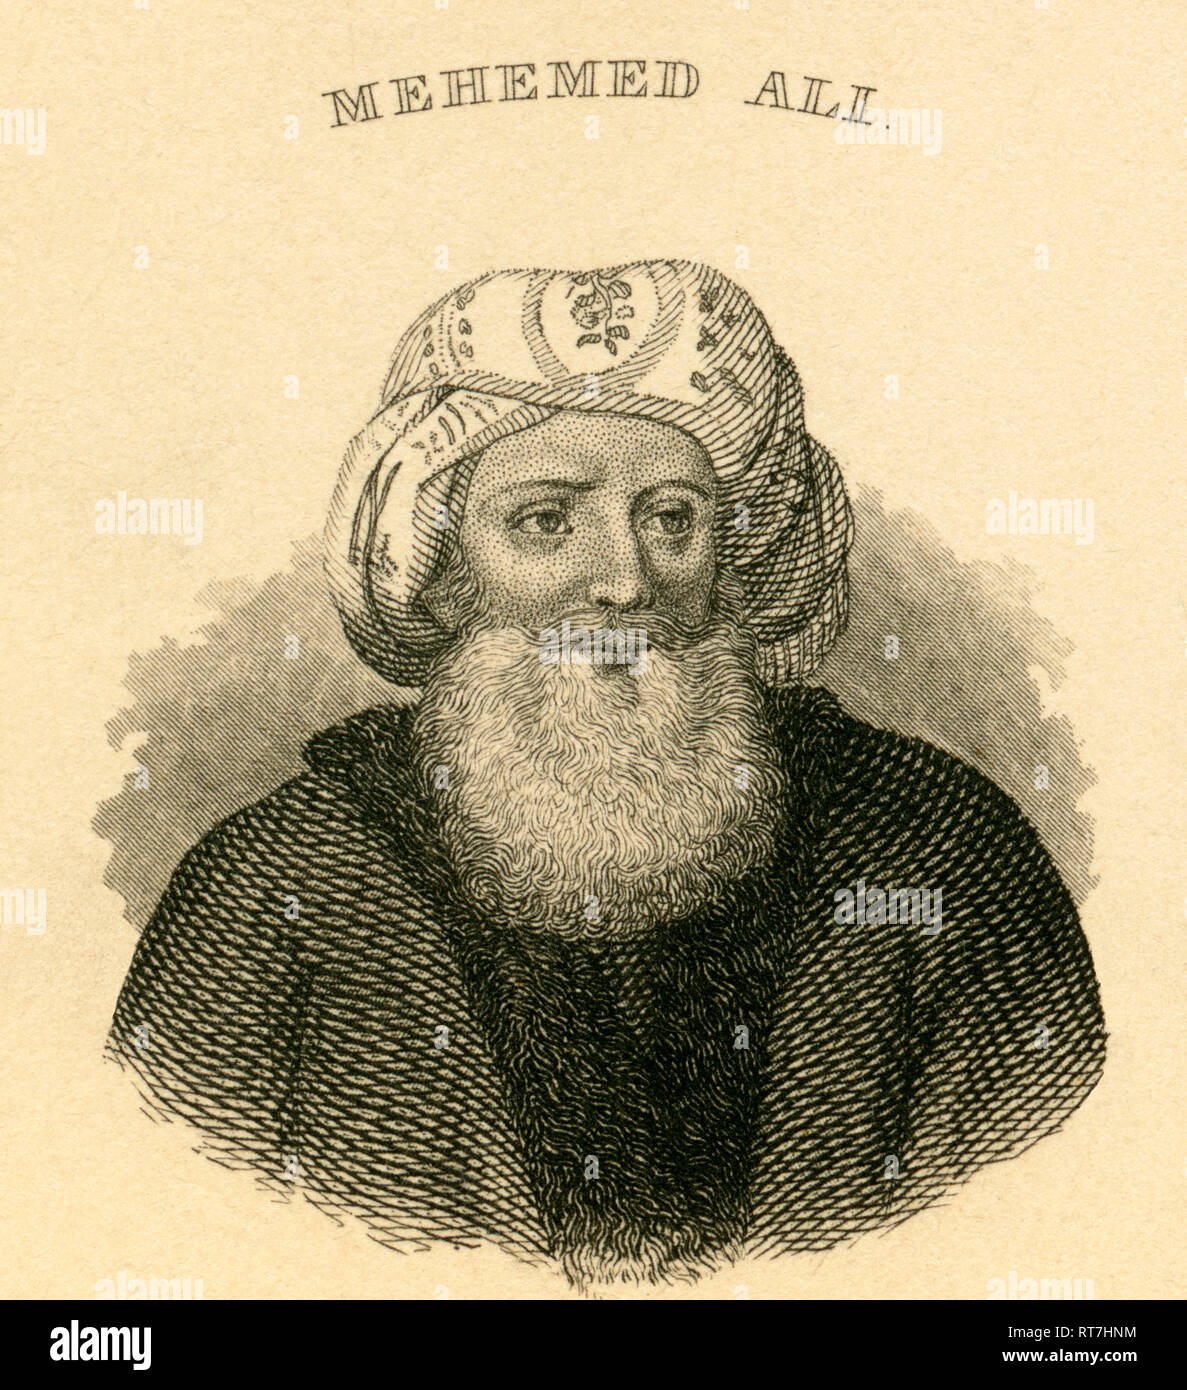 Mehemed Ali, Ottoman commander in the Ottoman army, steel engraving from Carl Mayer / Nürnberg, published by C. A. Hartleben in Pesth, about 1850., Artist's Copyright has not to be cleared - Stock Image